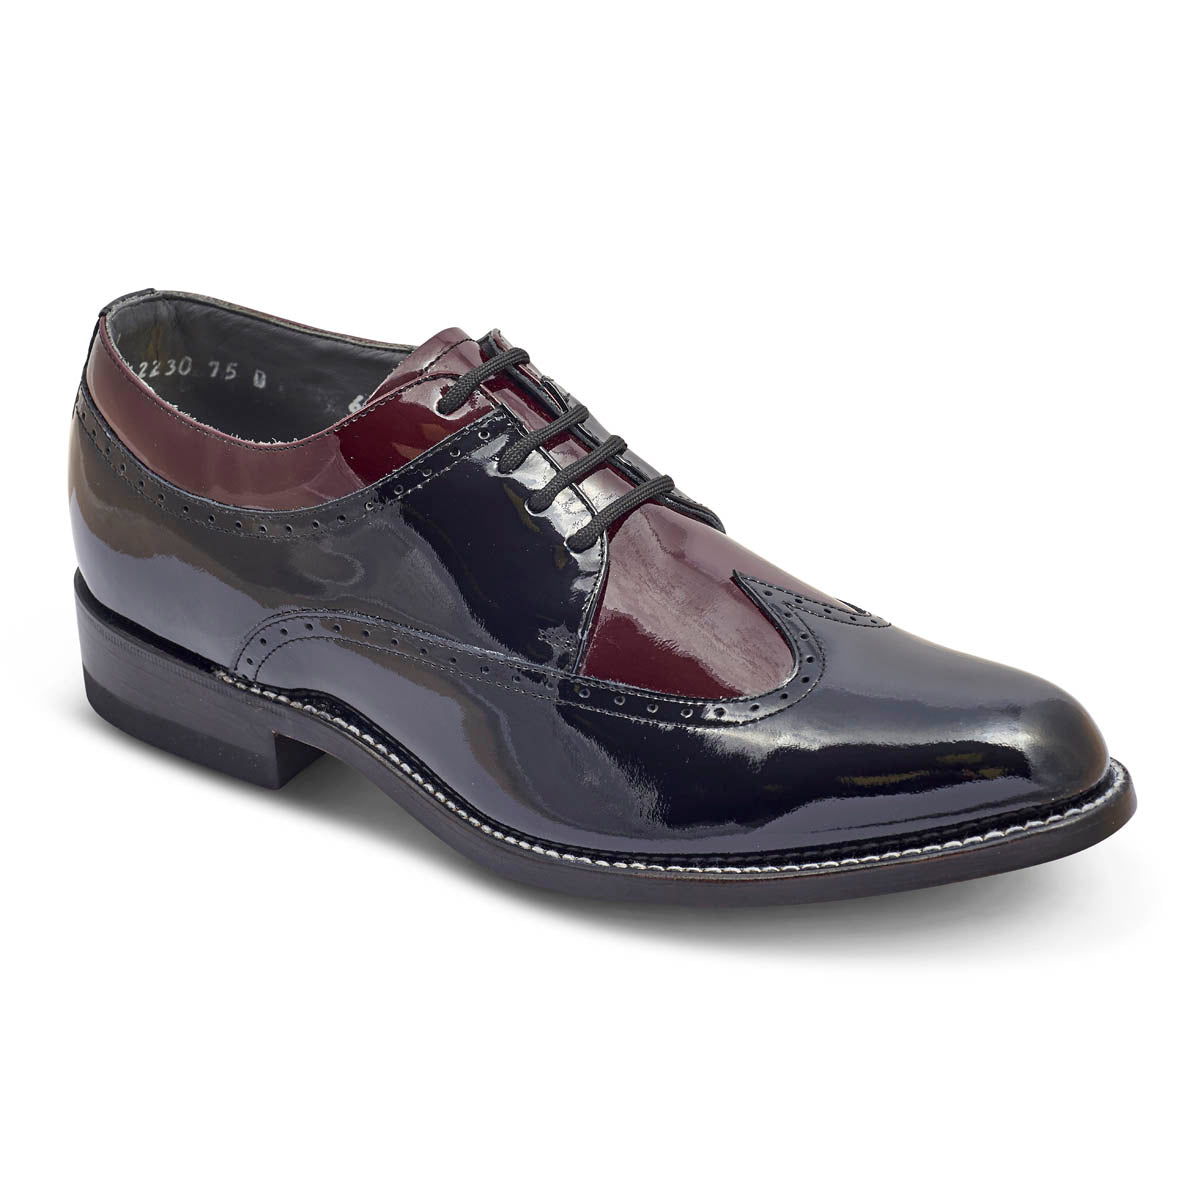 STACY PENNER - Black/Wine Wing Tip (C1622)